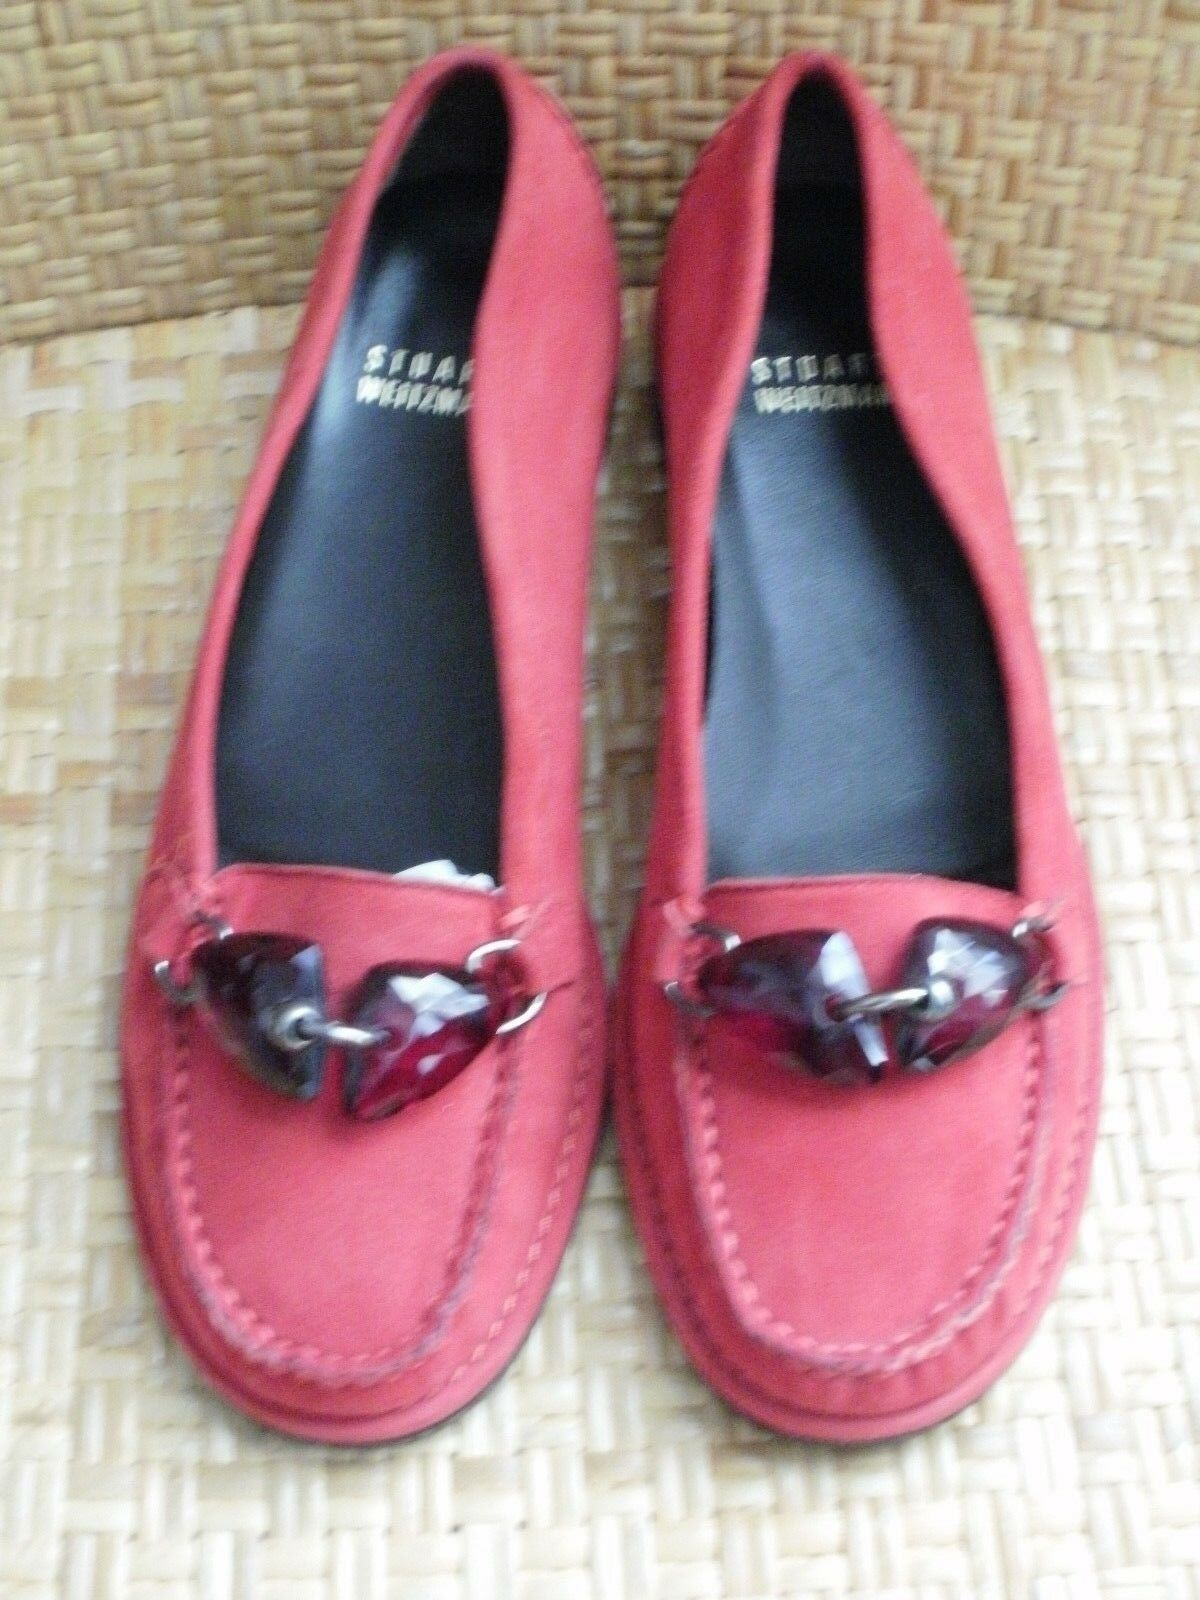 Stuart Weitzman jeweled - ROT Suede loafers w/ jeweled Weitzman front detail - Größe 6 / Spain 7906c2